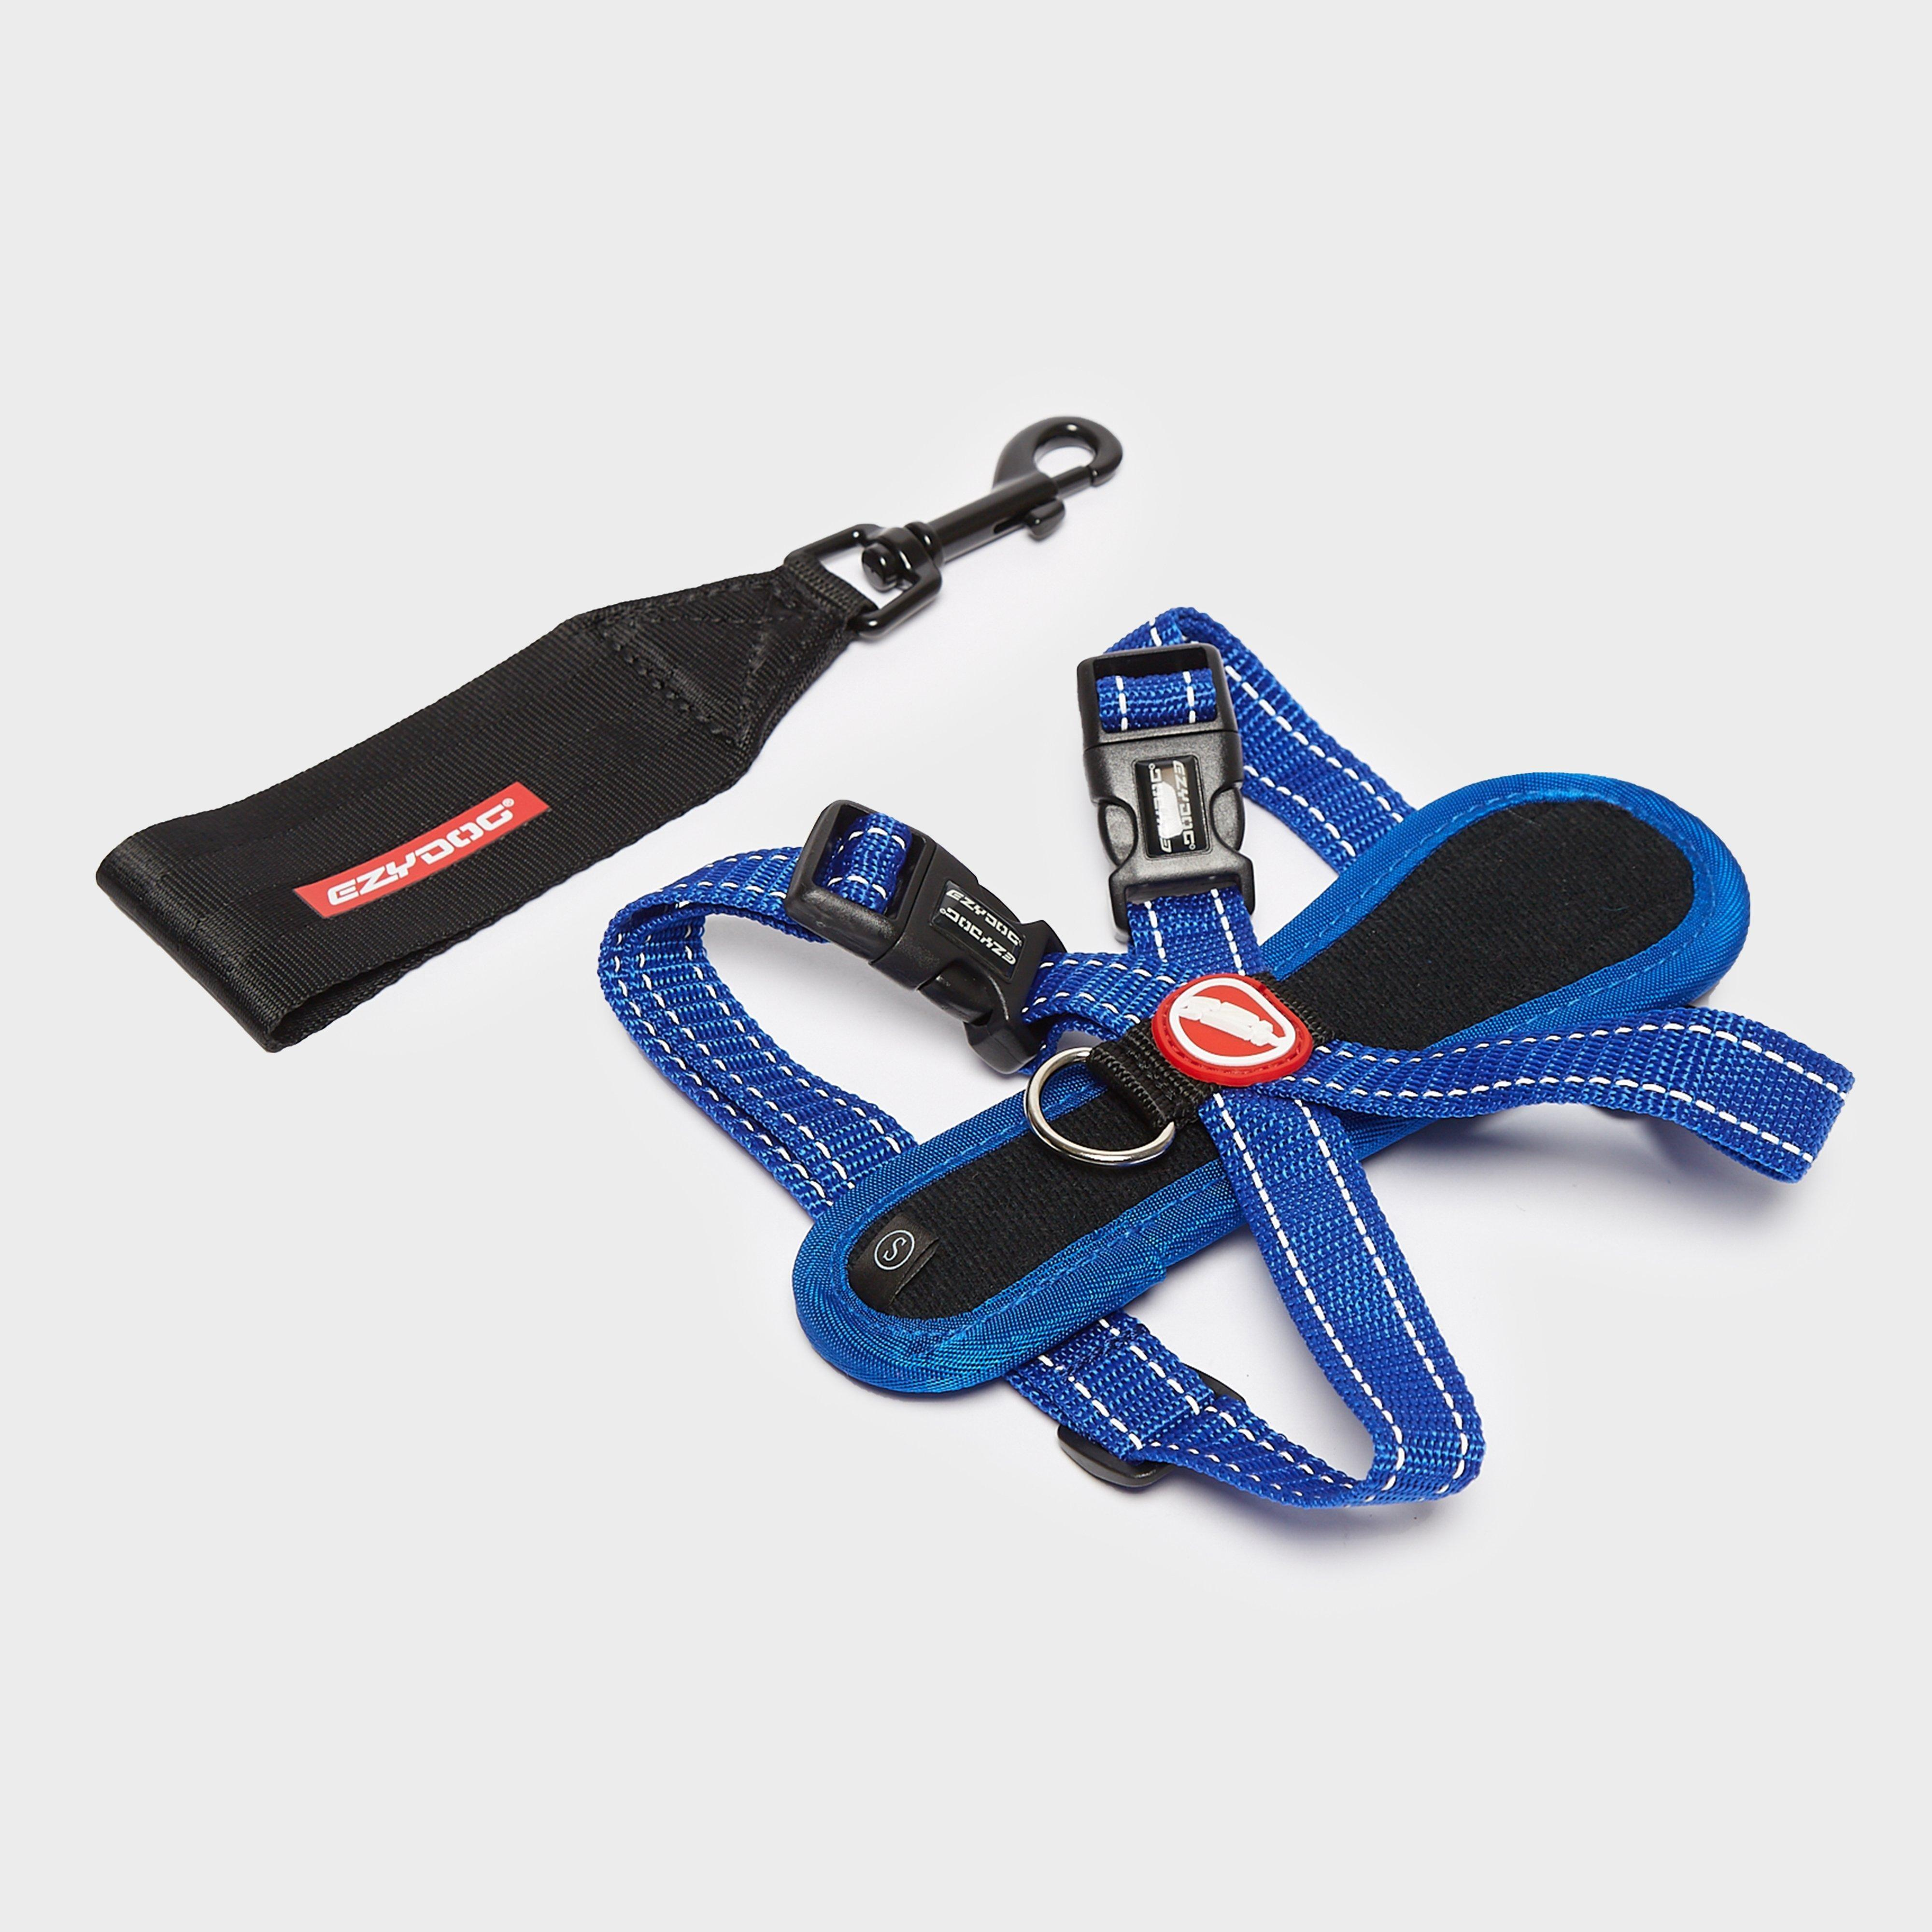 Image of Ezy-Dog Chest Plate Harness Small - Blue/Mbl, Blue/MBL